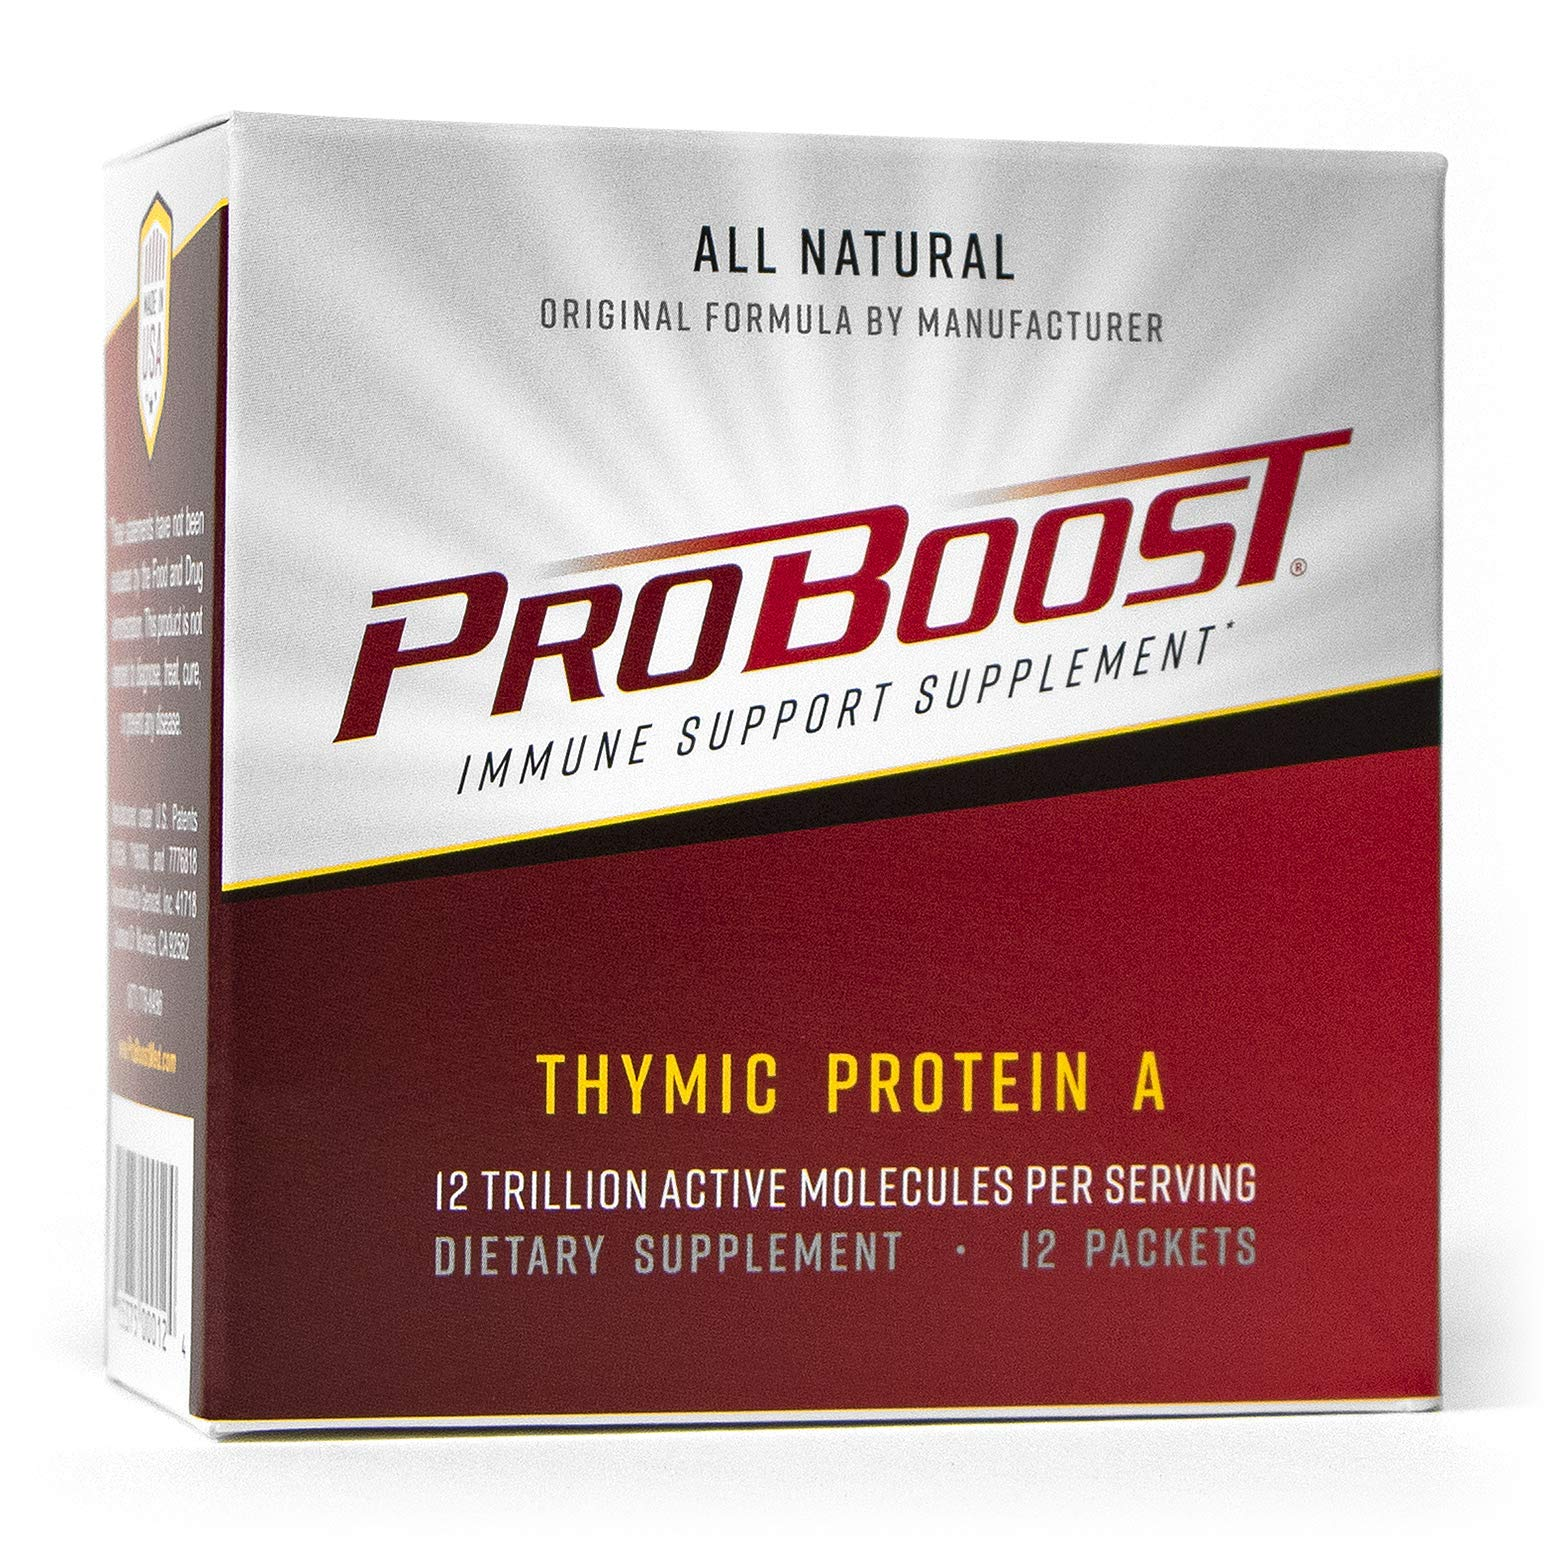 ProBoost, Thymic Protein A (TPA), 12 Packets with 4 mcg TPA/Packet - Immune Support Supplement by Genicel, Inc.